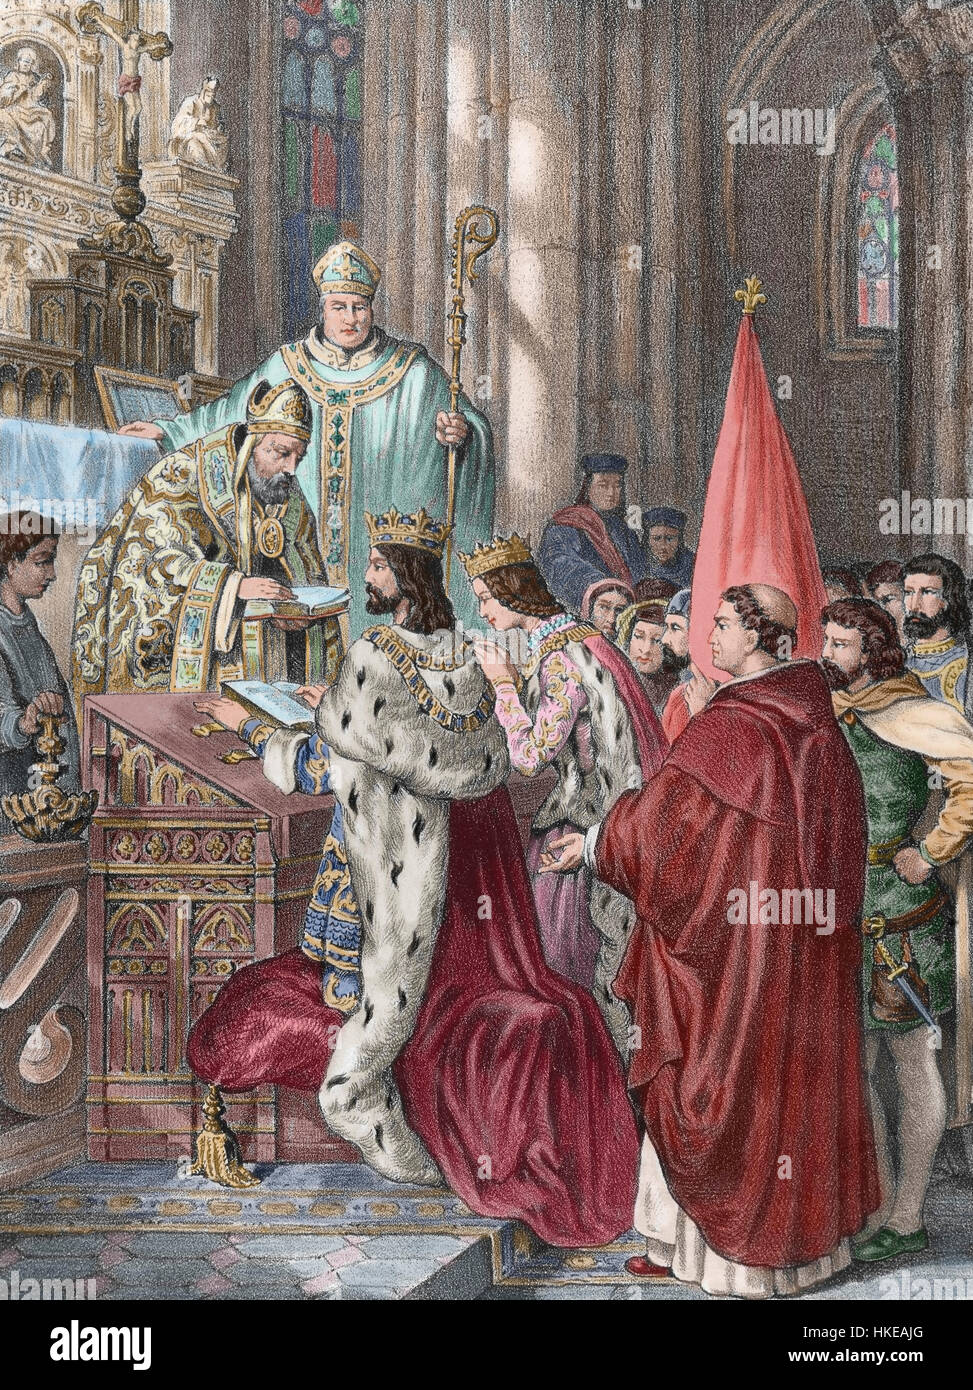 Alfonso III (c.848-910). Called the Great. King of Asturias. Wedding between king Alfonso and Jimena of Pamplona - Stock Image